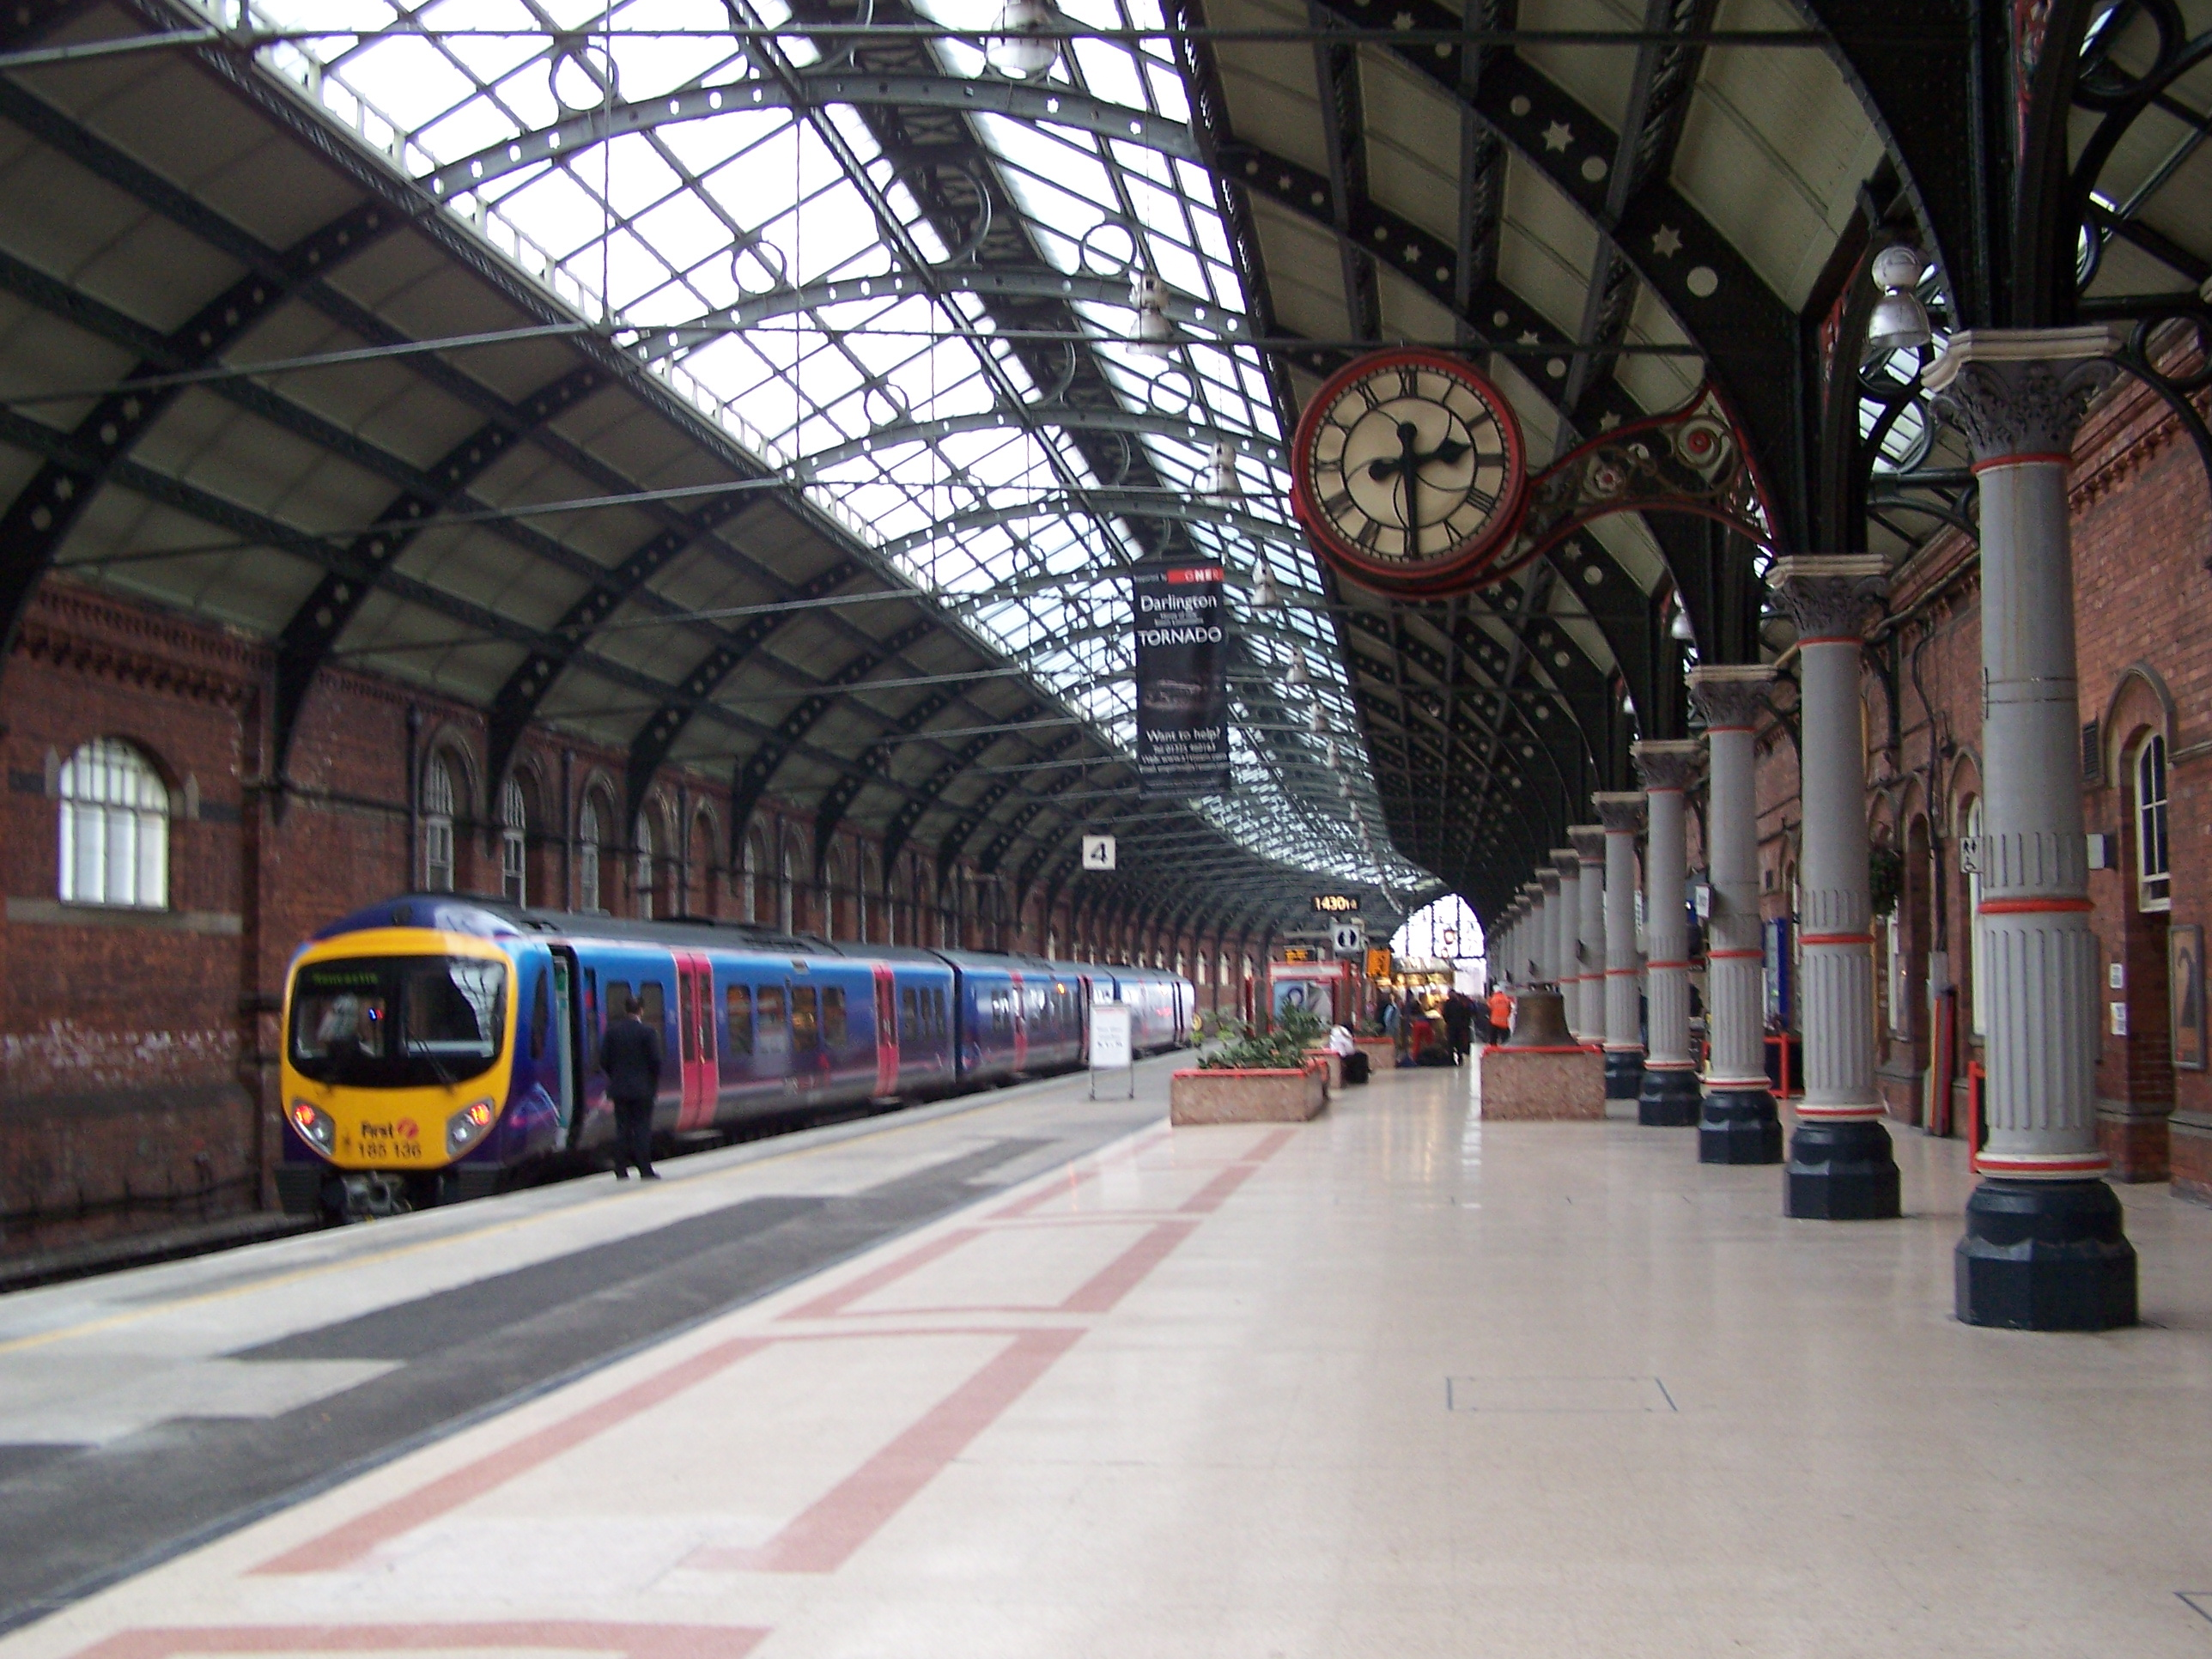 469 Words Essay on A Visit to a Railway Station